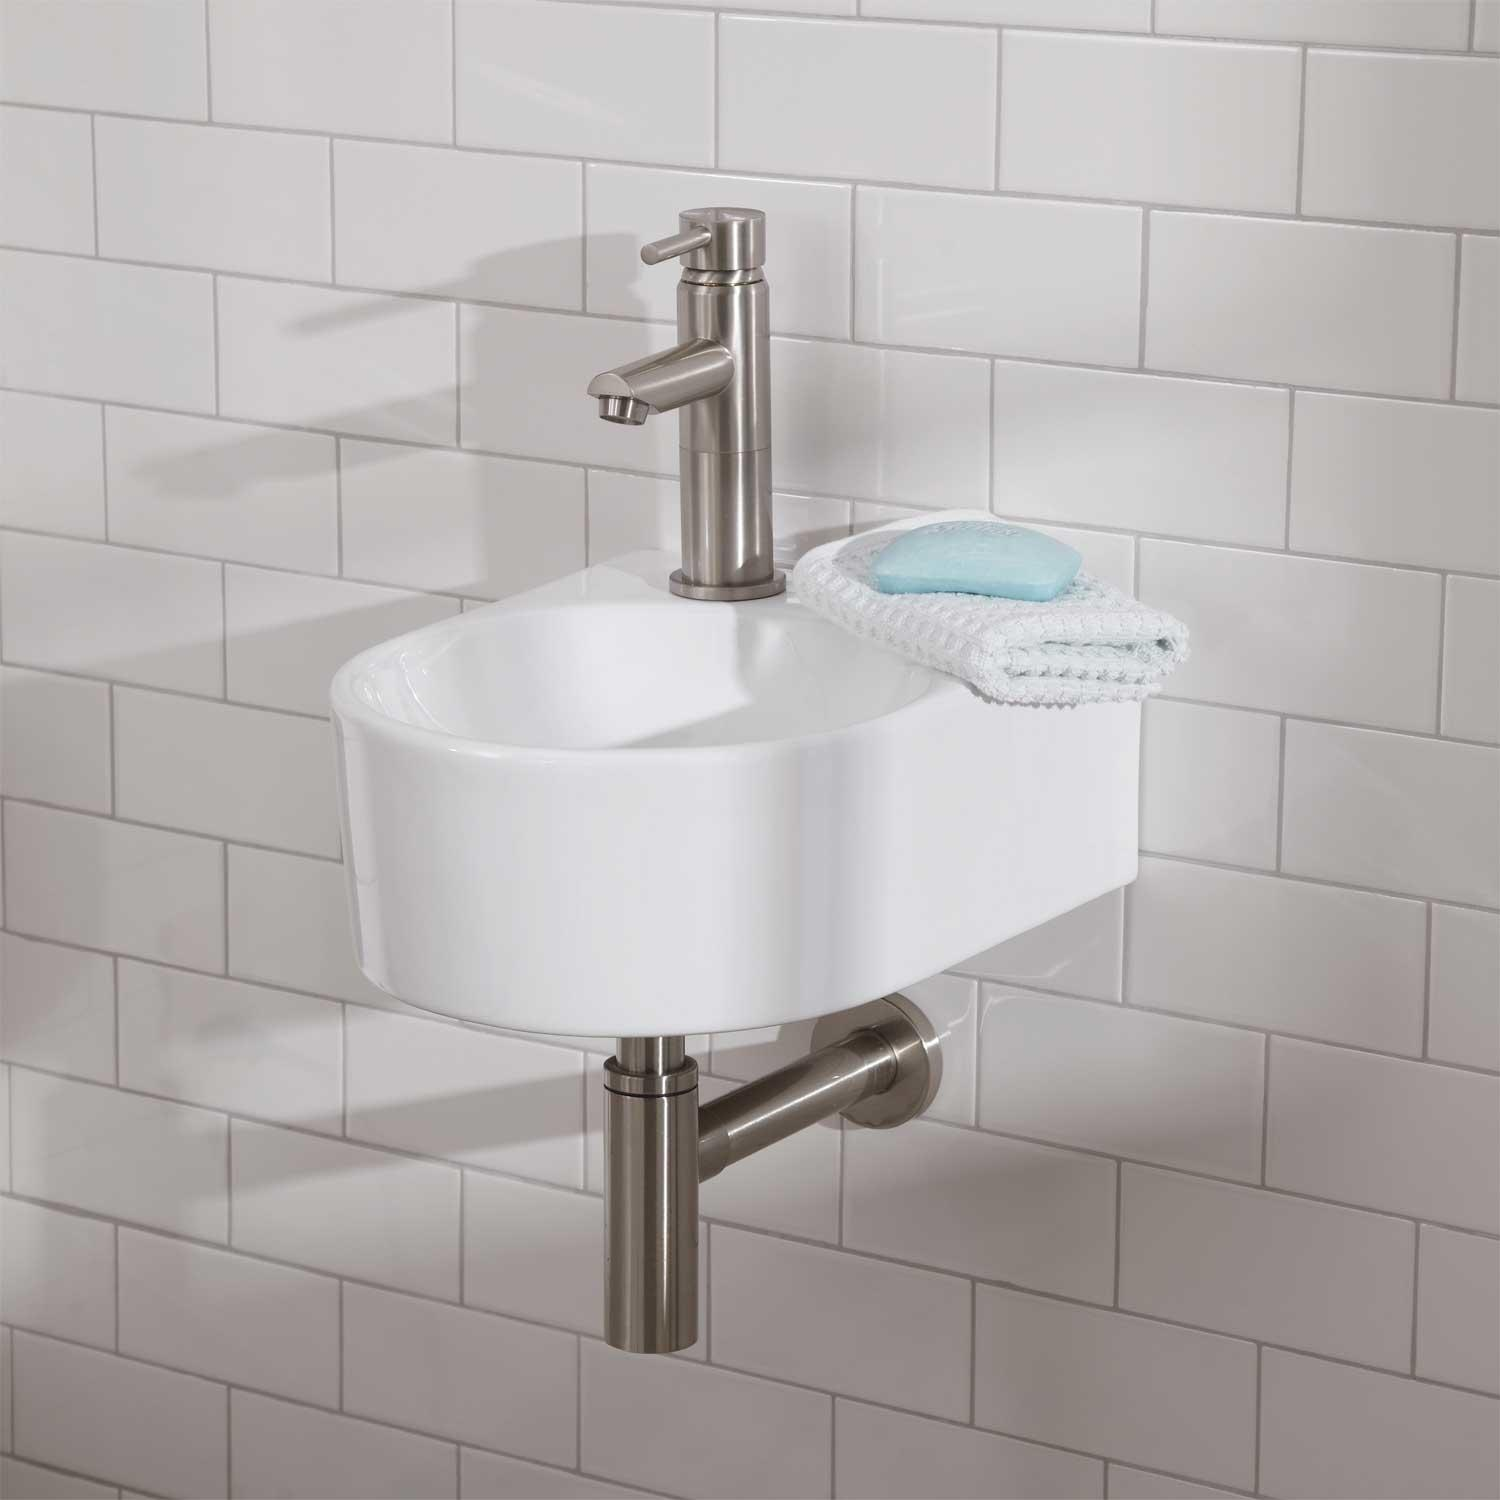 Prescott Wall Mount Bathroom Sink